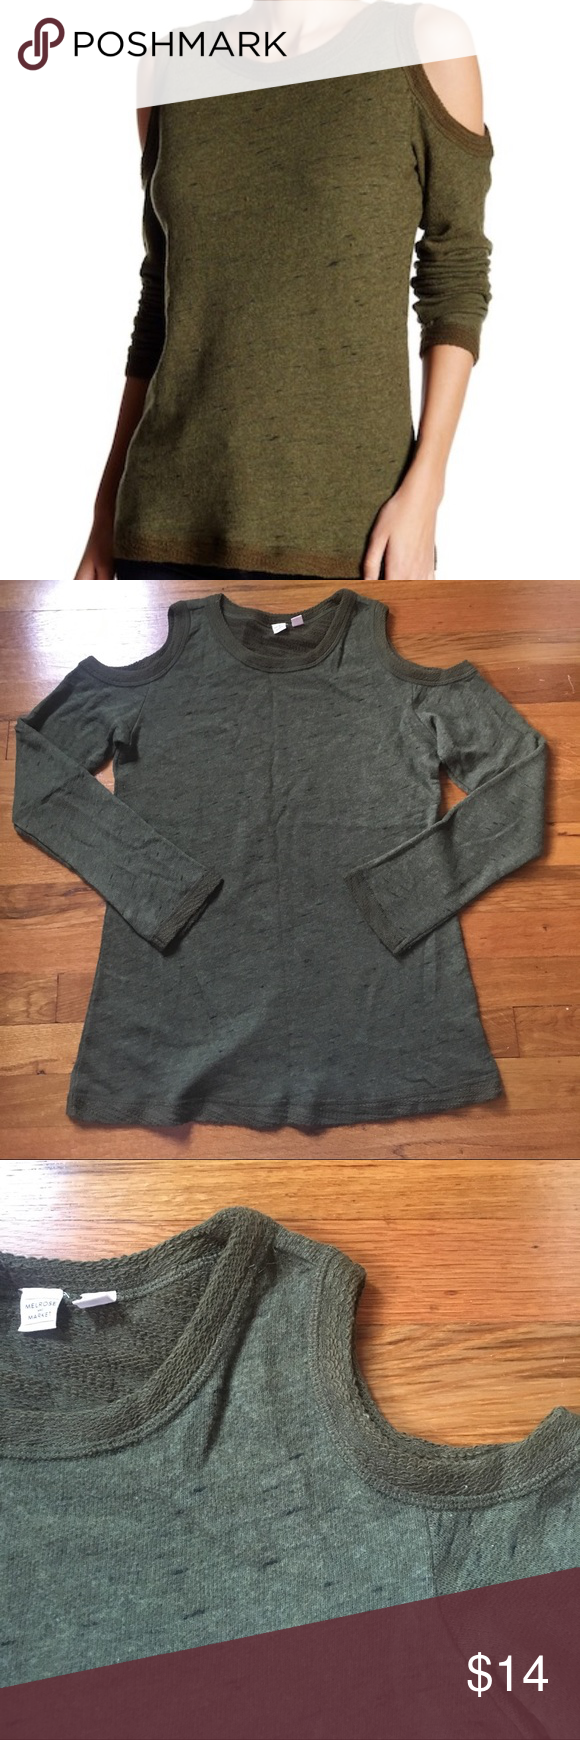 28e9748c0aa3a Melrose and market cold shoulder top Melrose and market (a Nordstrom brand) cold  shoulder top. SiZe medium. Great condition. Feel free to ask any questions  ...